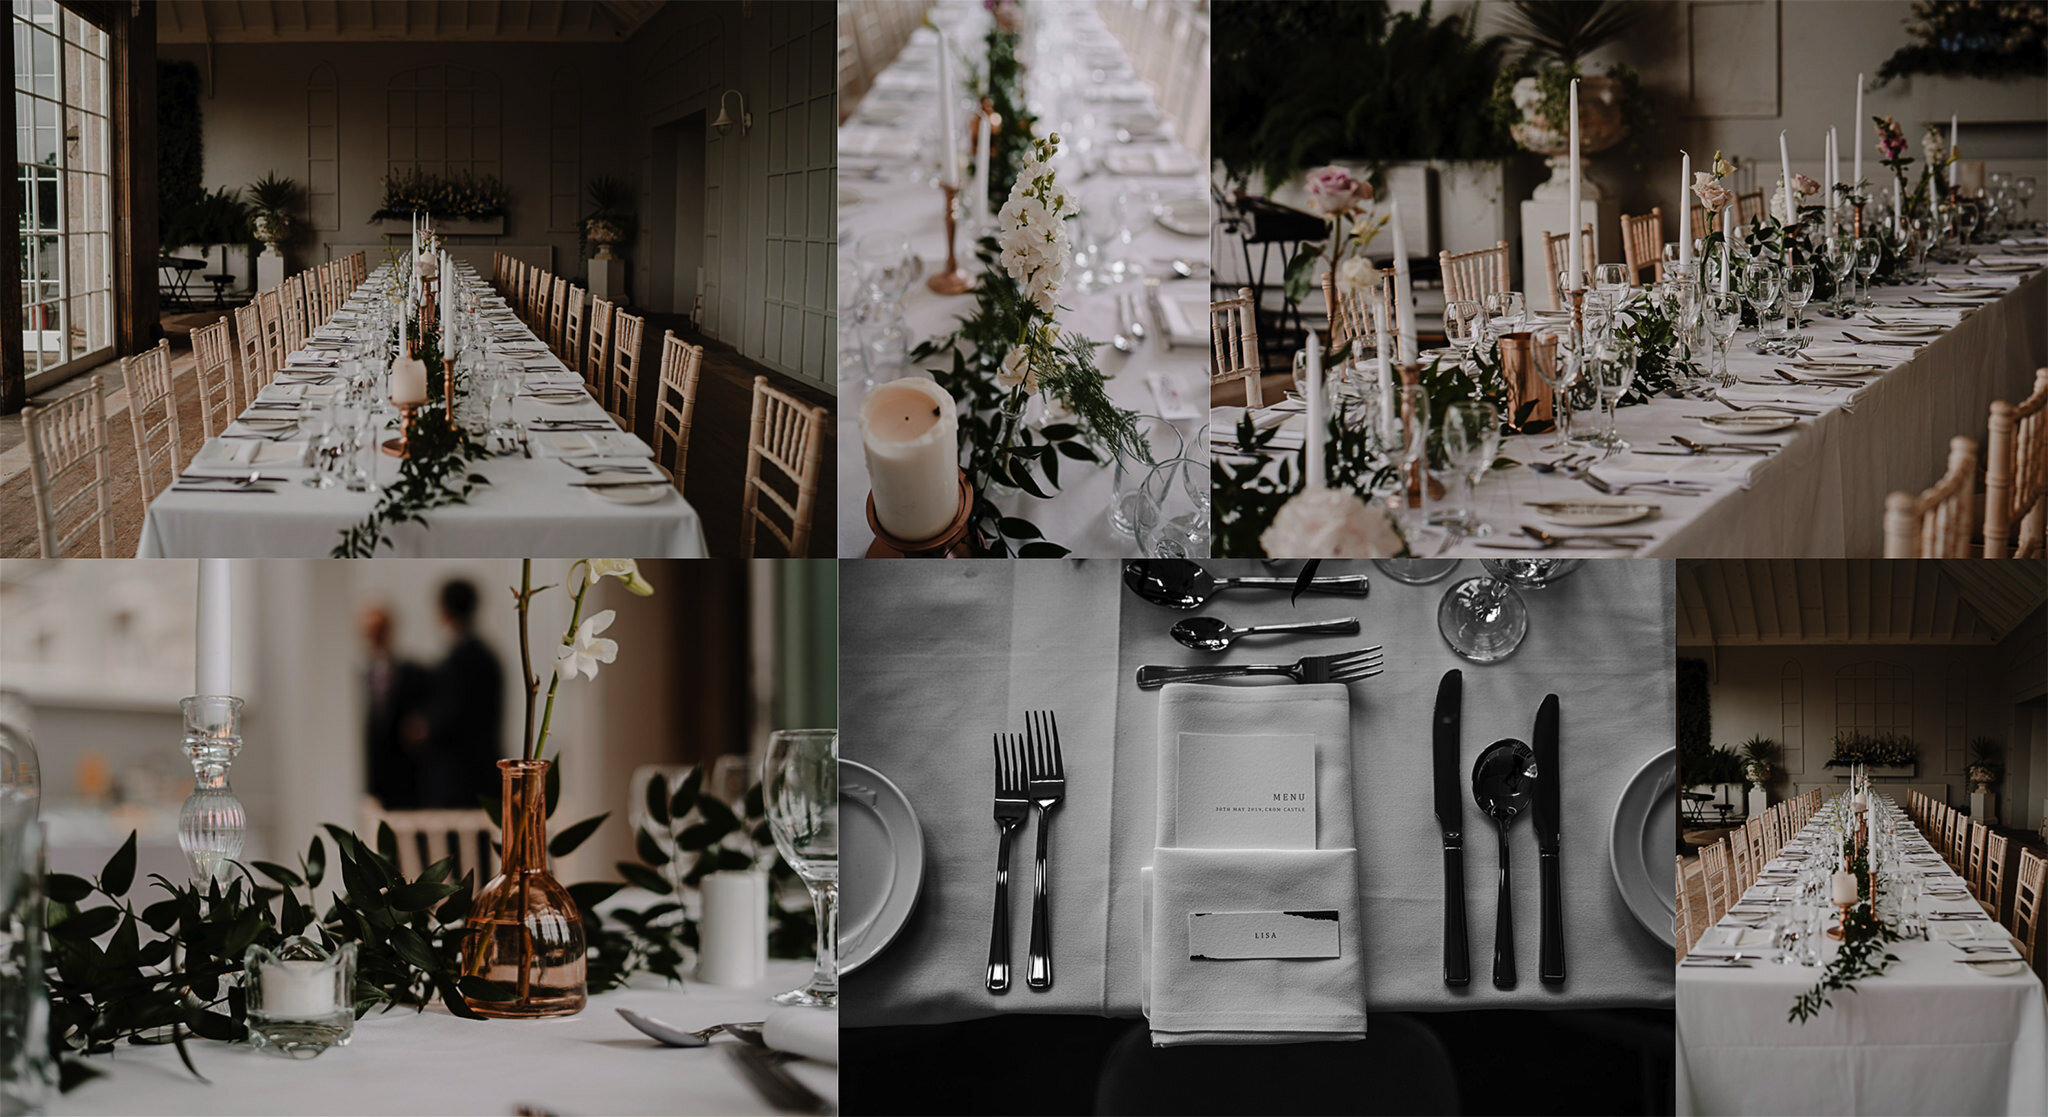 Crom castle intimate elegant wedding enniskillen decor tables